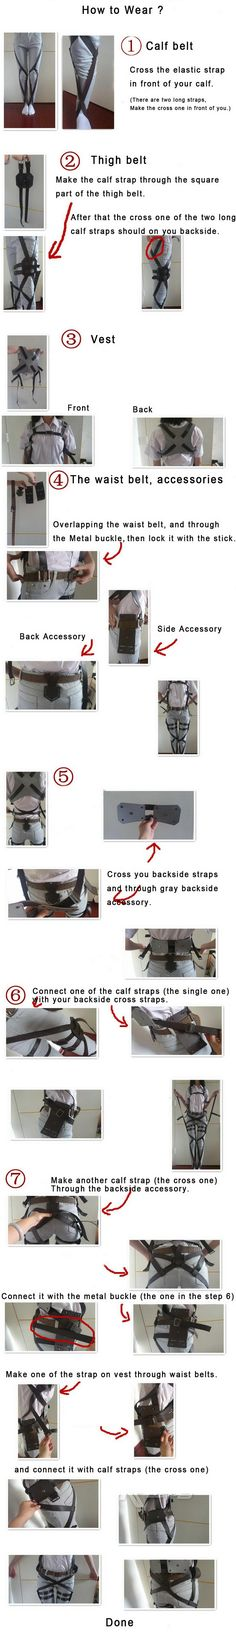 Attack on Titan Shingeki no Kyojin Advancing Giants Belt and Harness Deluxe Version